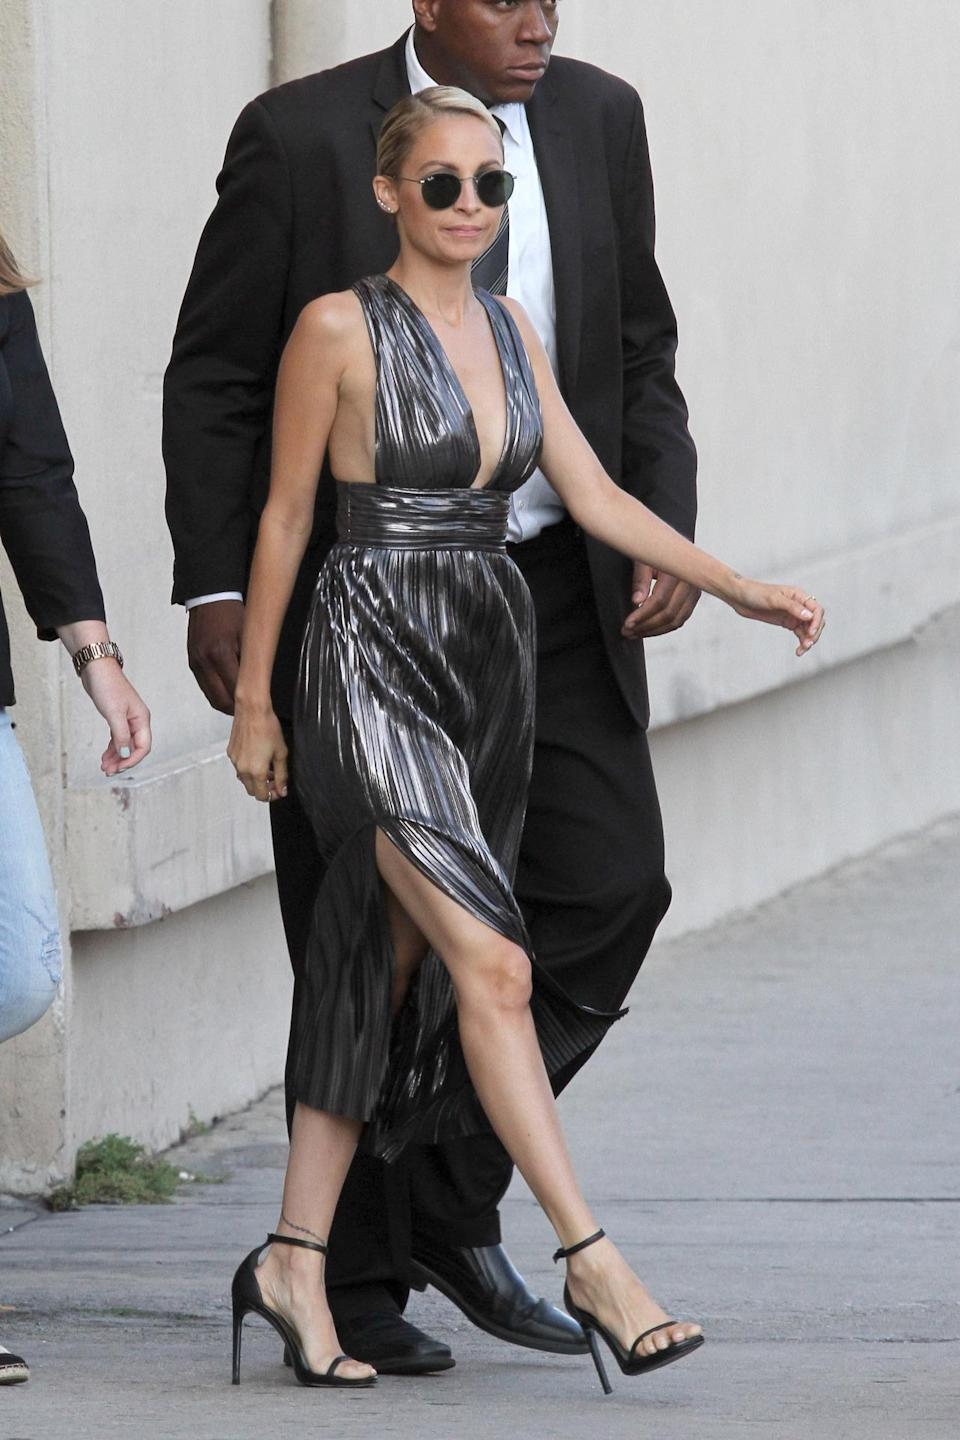 <p>The reality star arrived to a taping of the Jimmy Kimmel Live to promote the new season of her show, <i>Candidly Nicole</i>, in a dazzling silver pleated dress.<br><br></p>